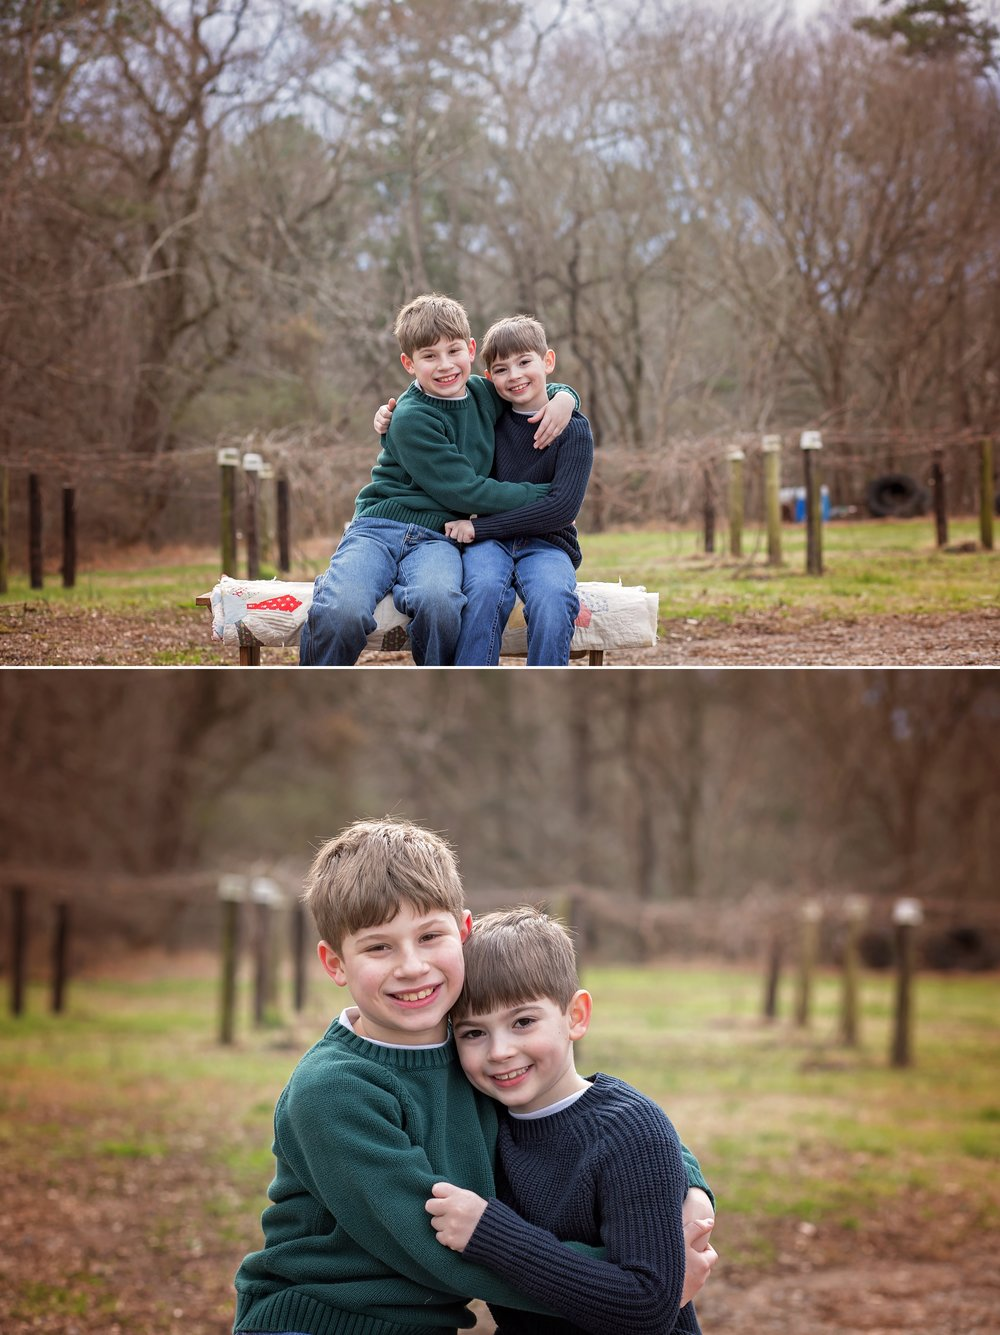 Brothers hug in field in Sanford NC.